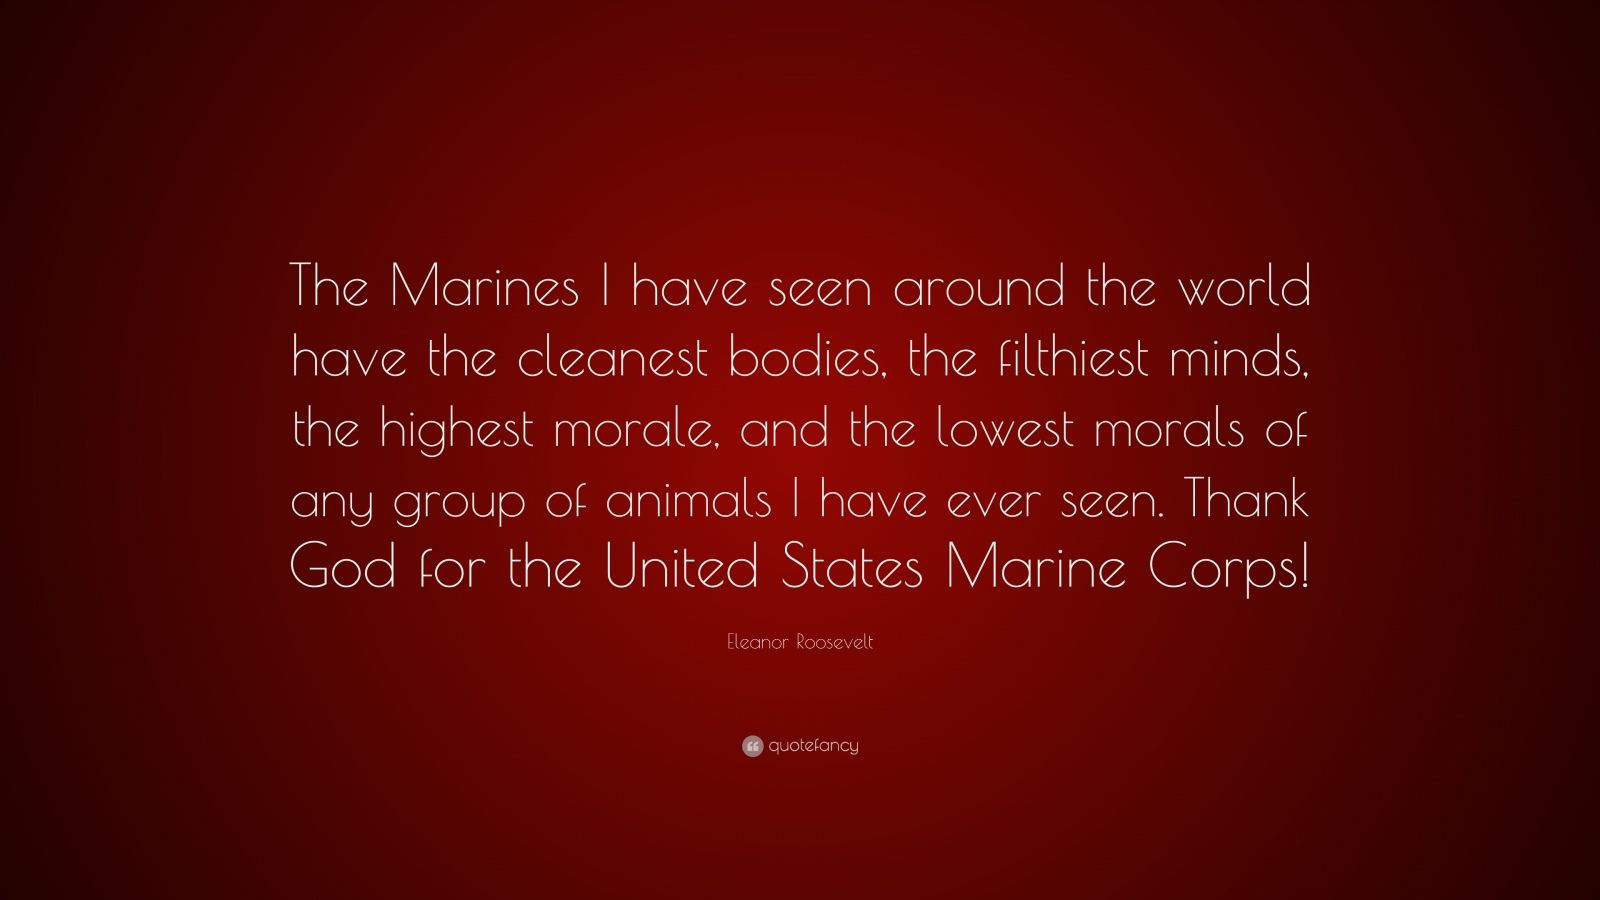 Eleanor Roosevelt Quote About Marines Brilliant Eleanor Roosevelt Quotes 100 Wallpapers  Quotefancy